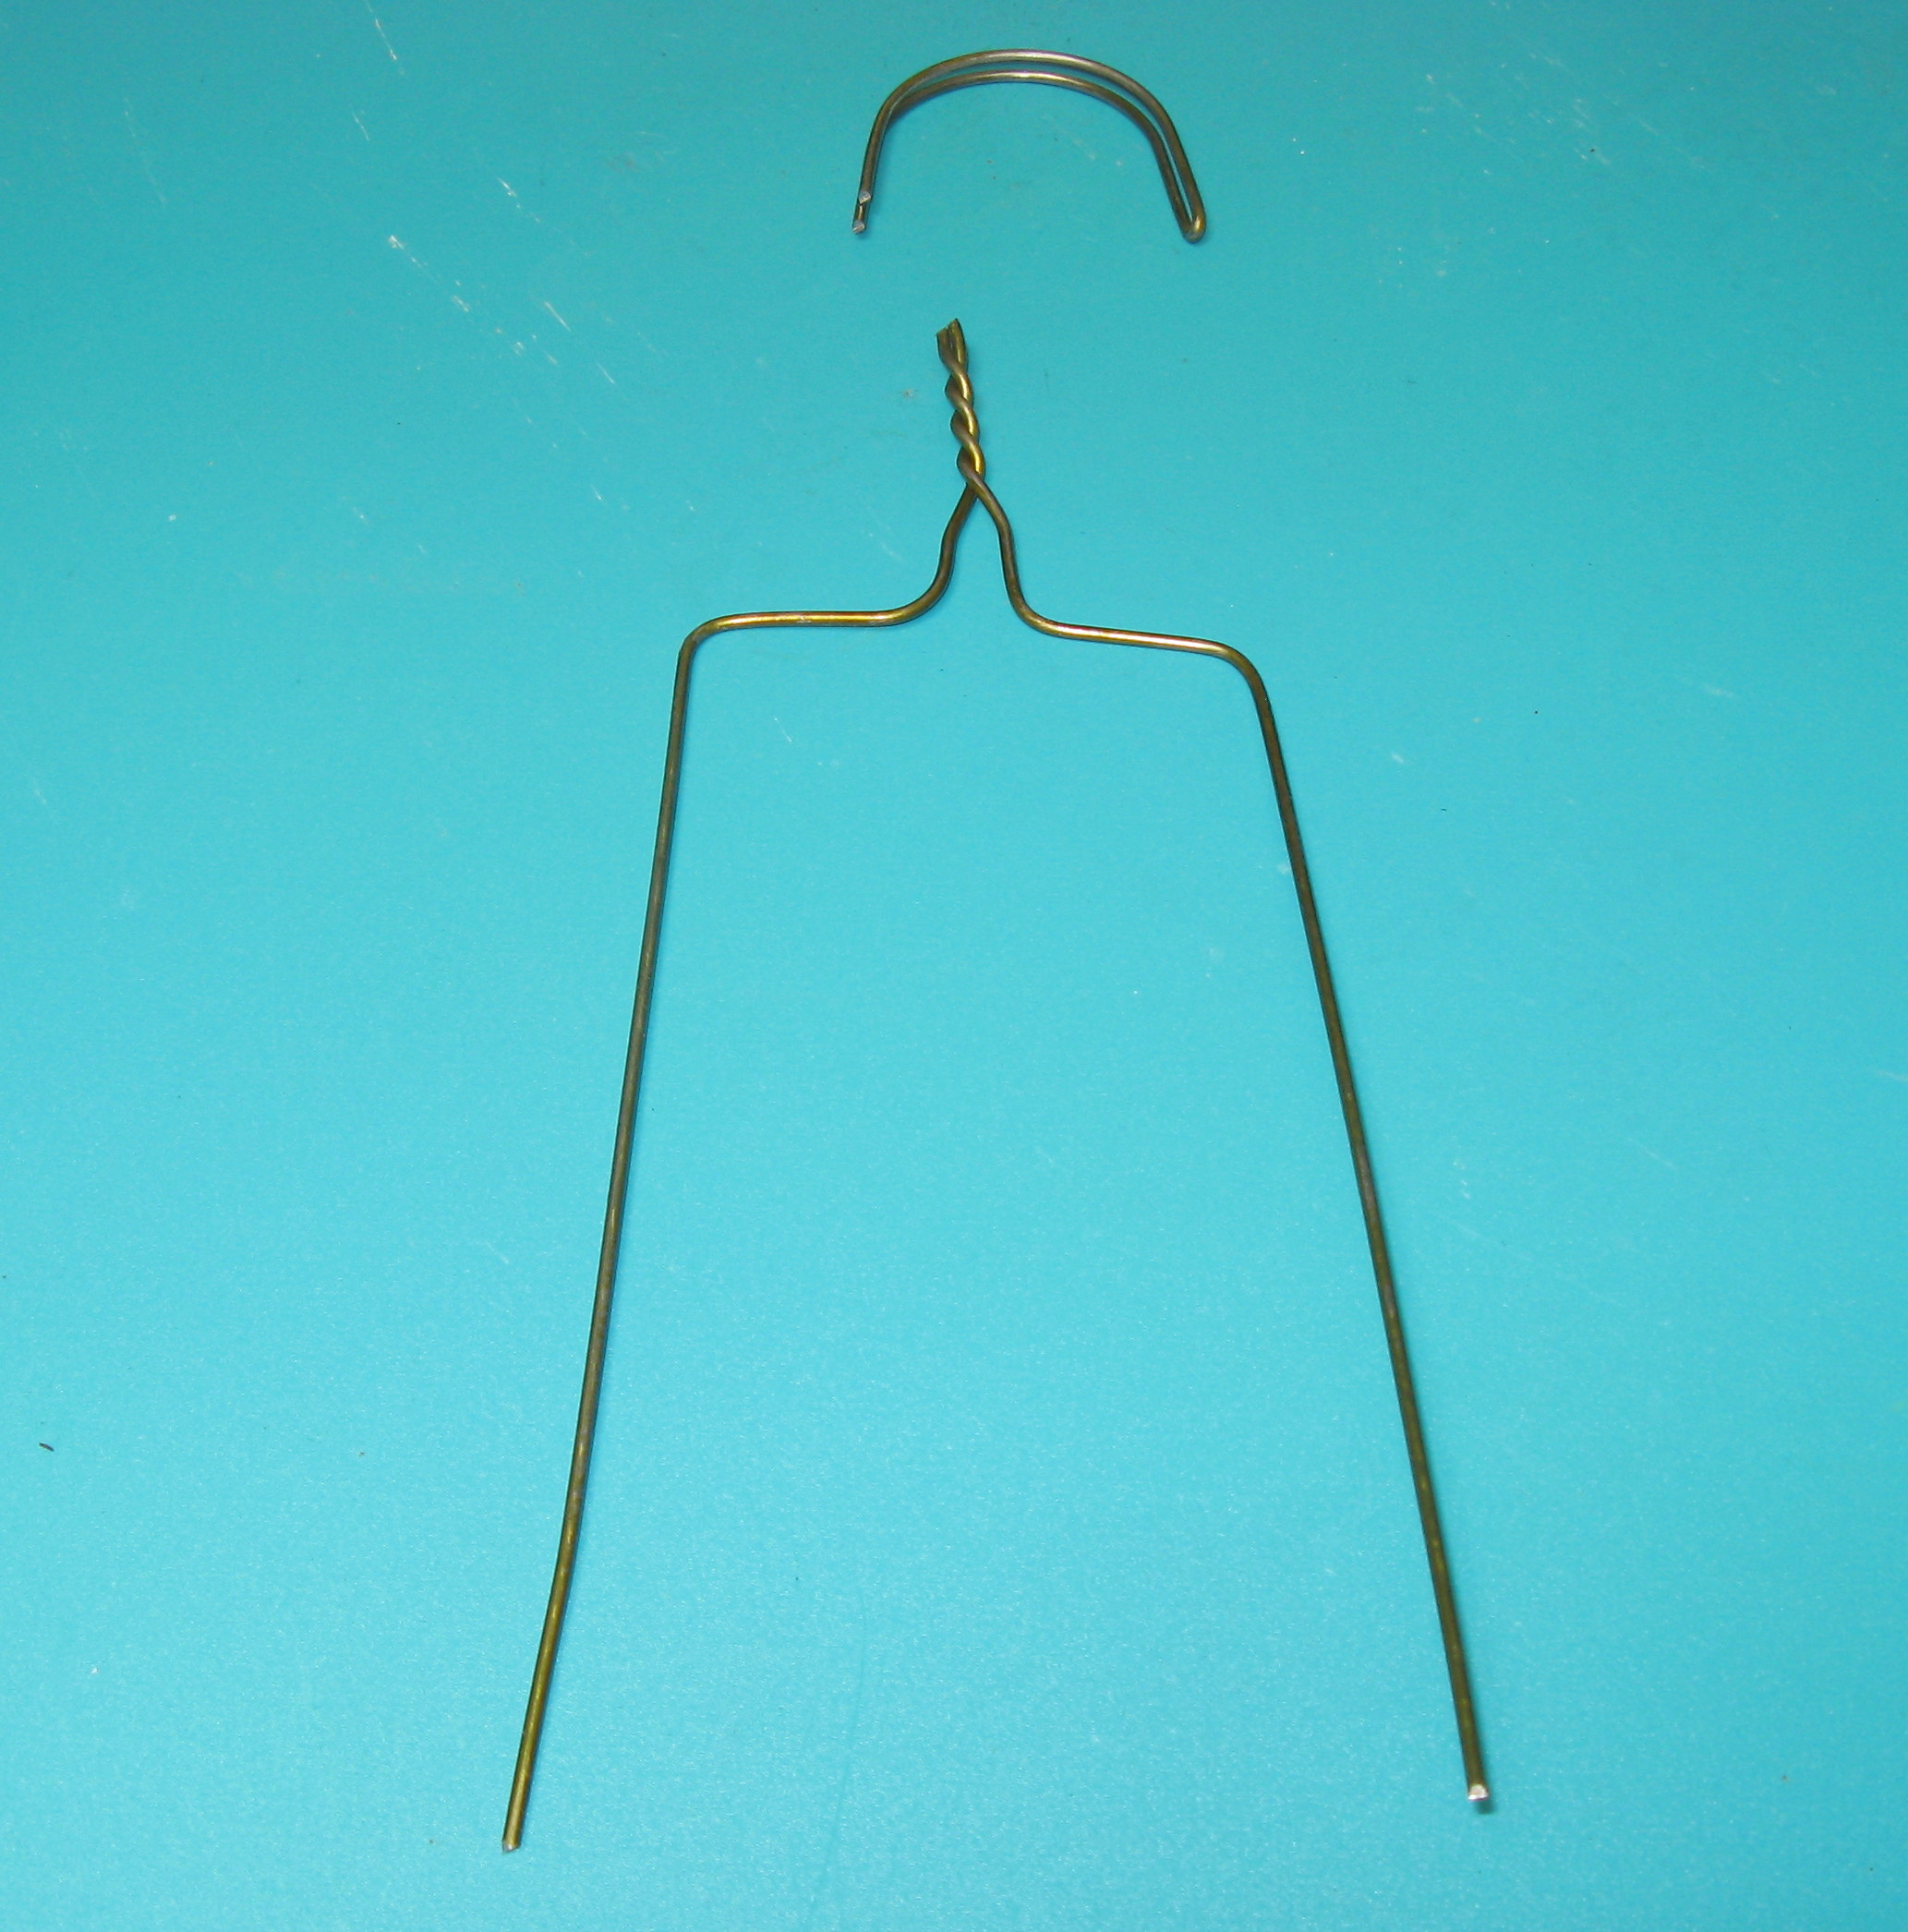 Picture of Altering the Coat Hanger